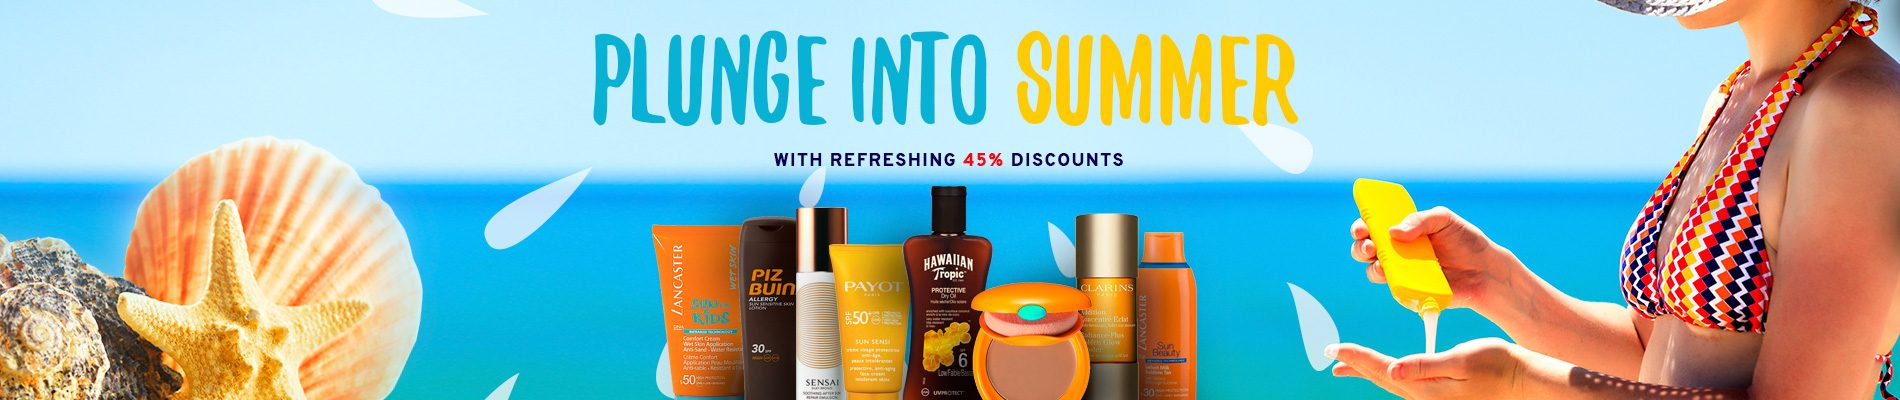 Plunge into summer with refreshing 45% discounts